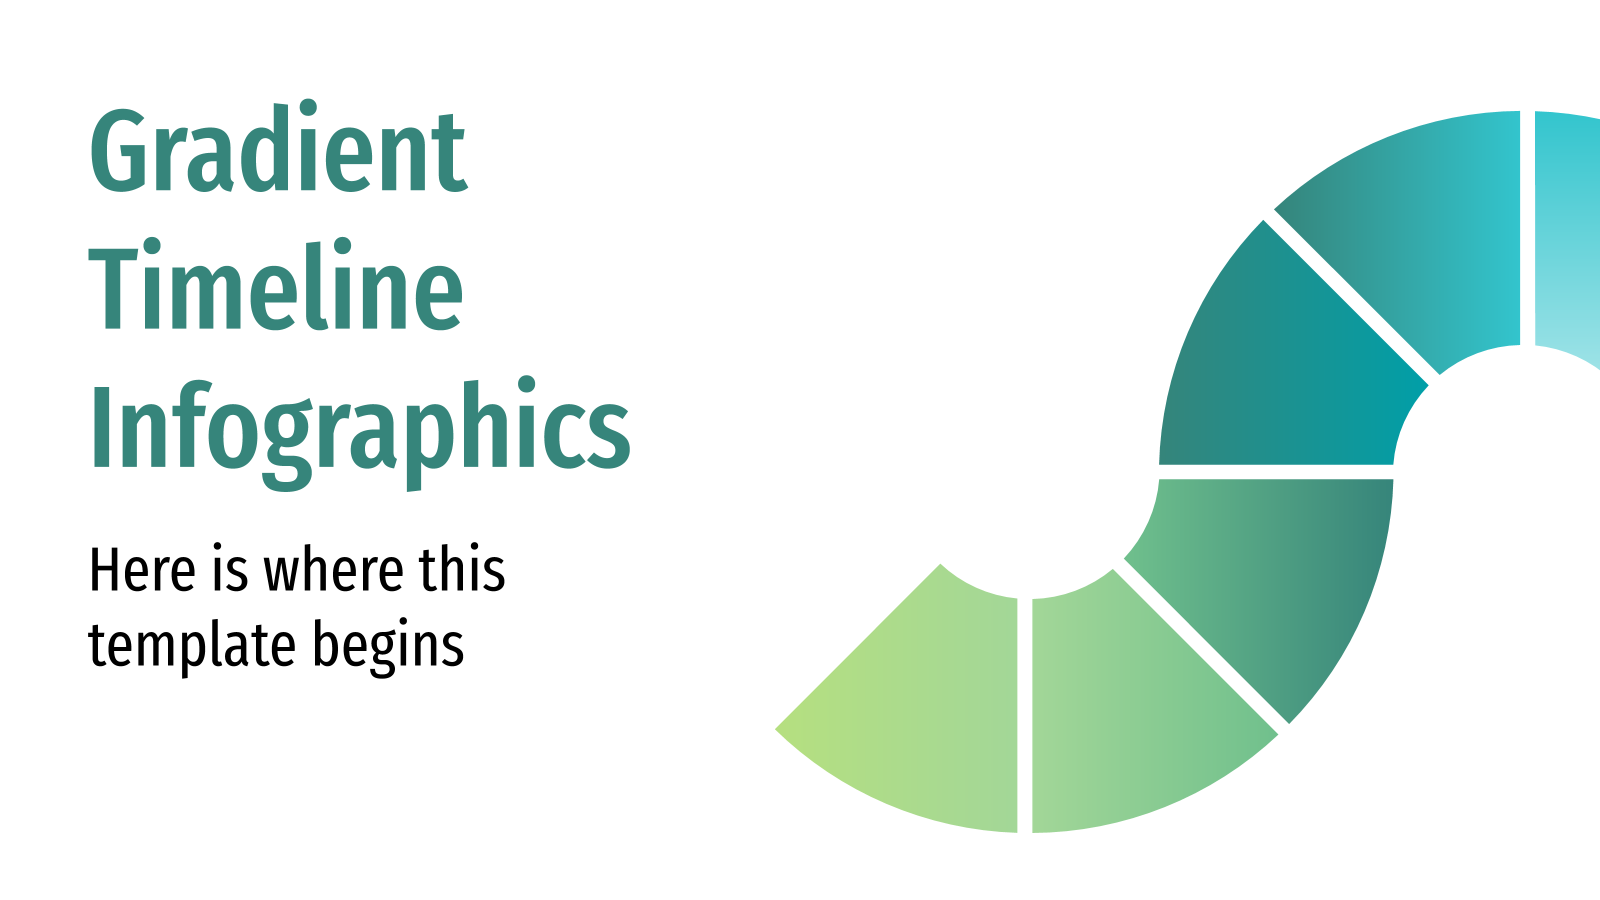 Gradient Timeline Infographics presentation template